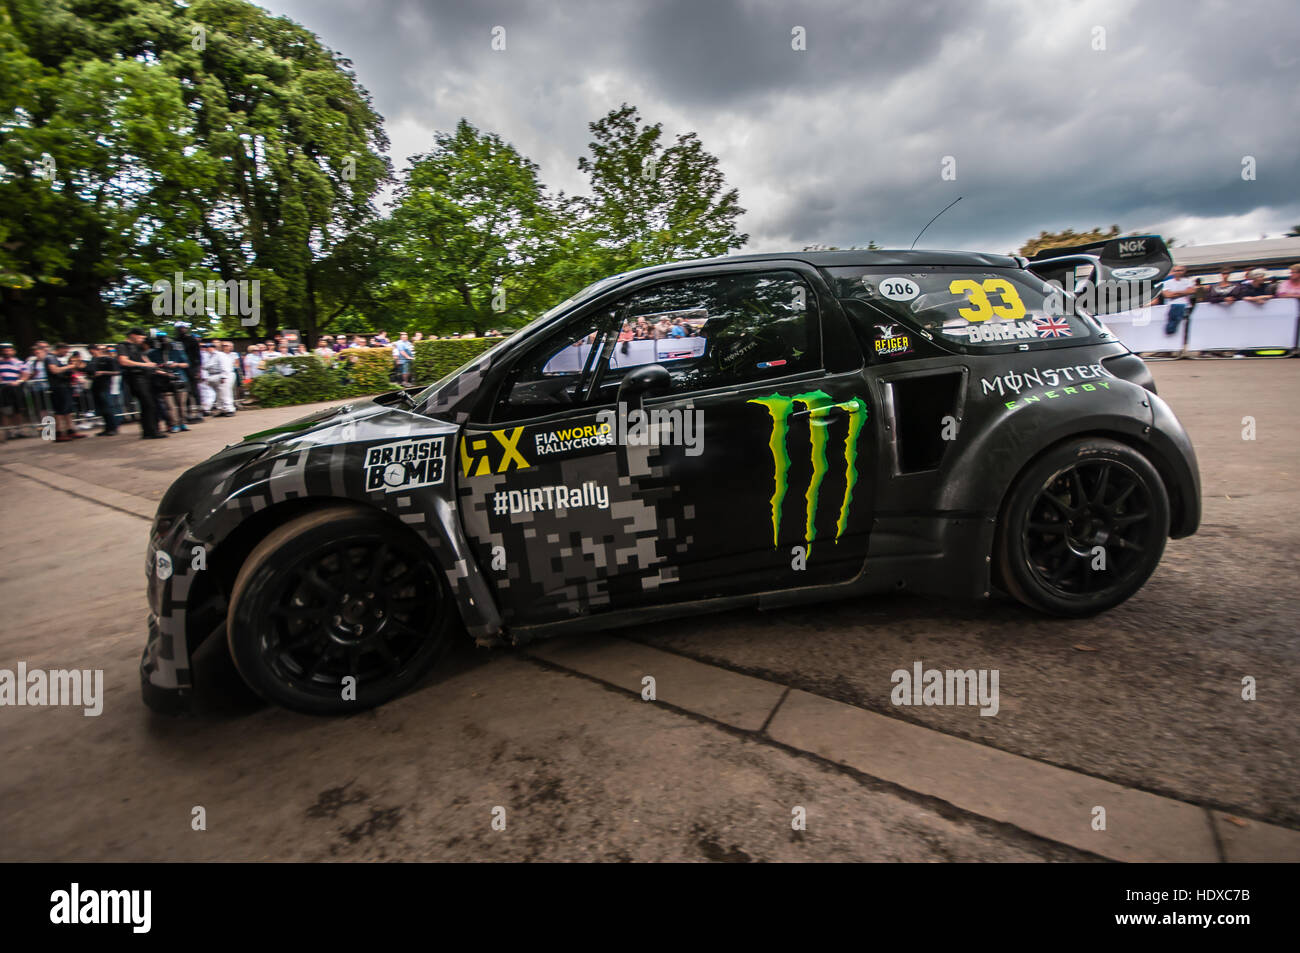 Ken Block Is A Professional Rally Driver With The Hoonigan Racing